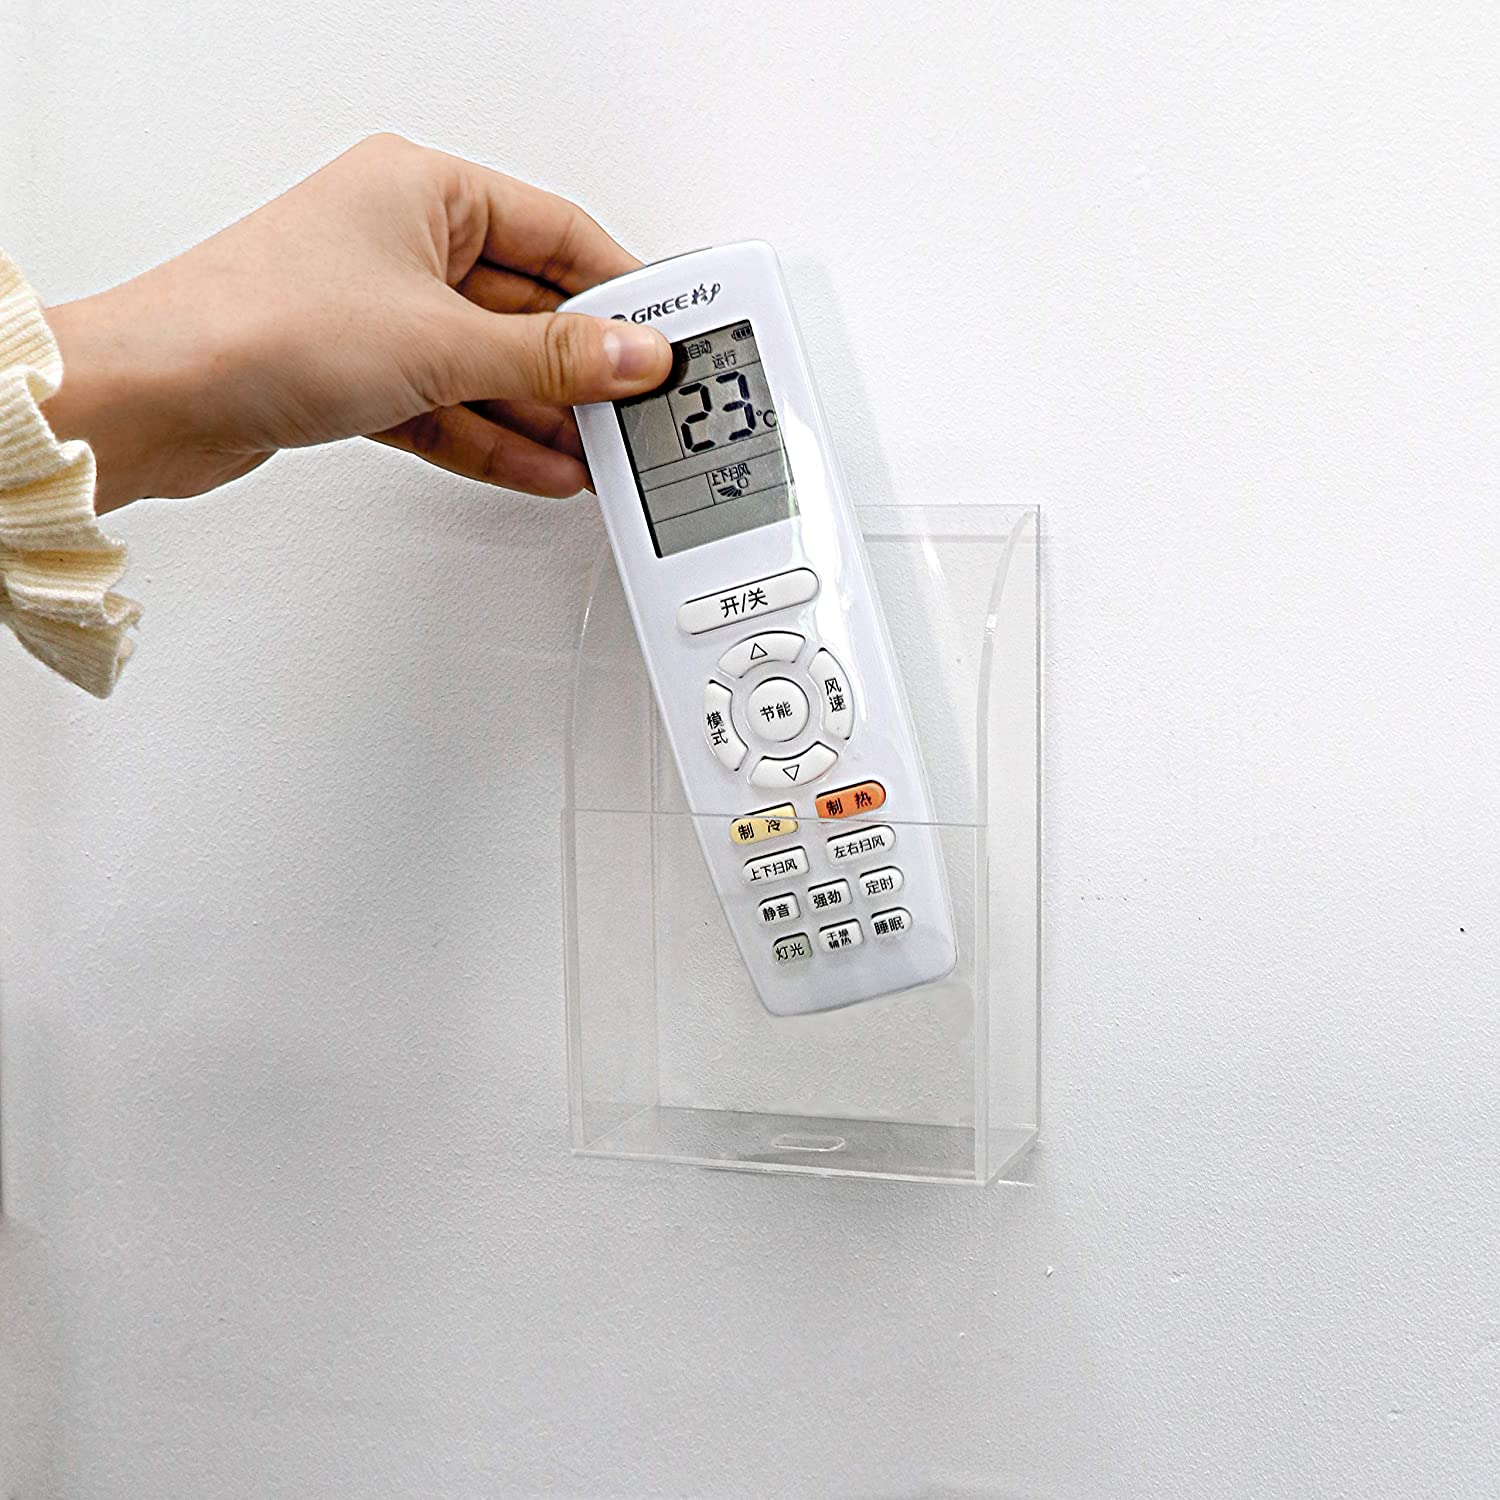 Fovasen Clear TV Remote Control Holder Wall Mounted Charging Phone Holder Media Storage Organizer Wall Box for Phone 2 Compartment